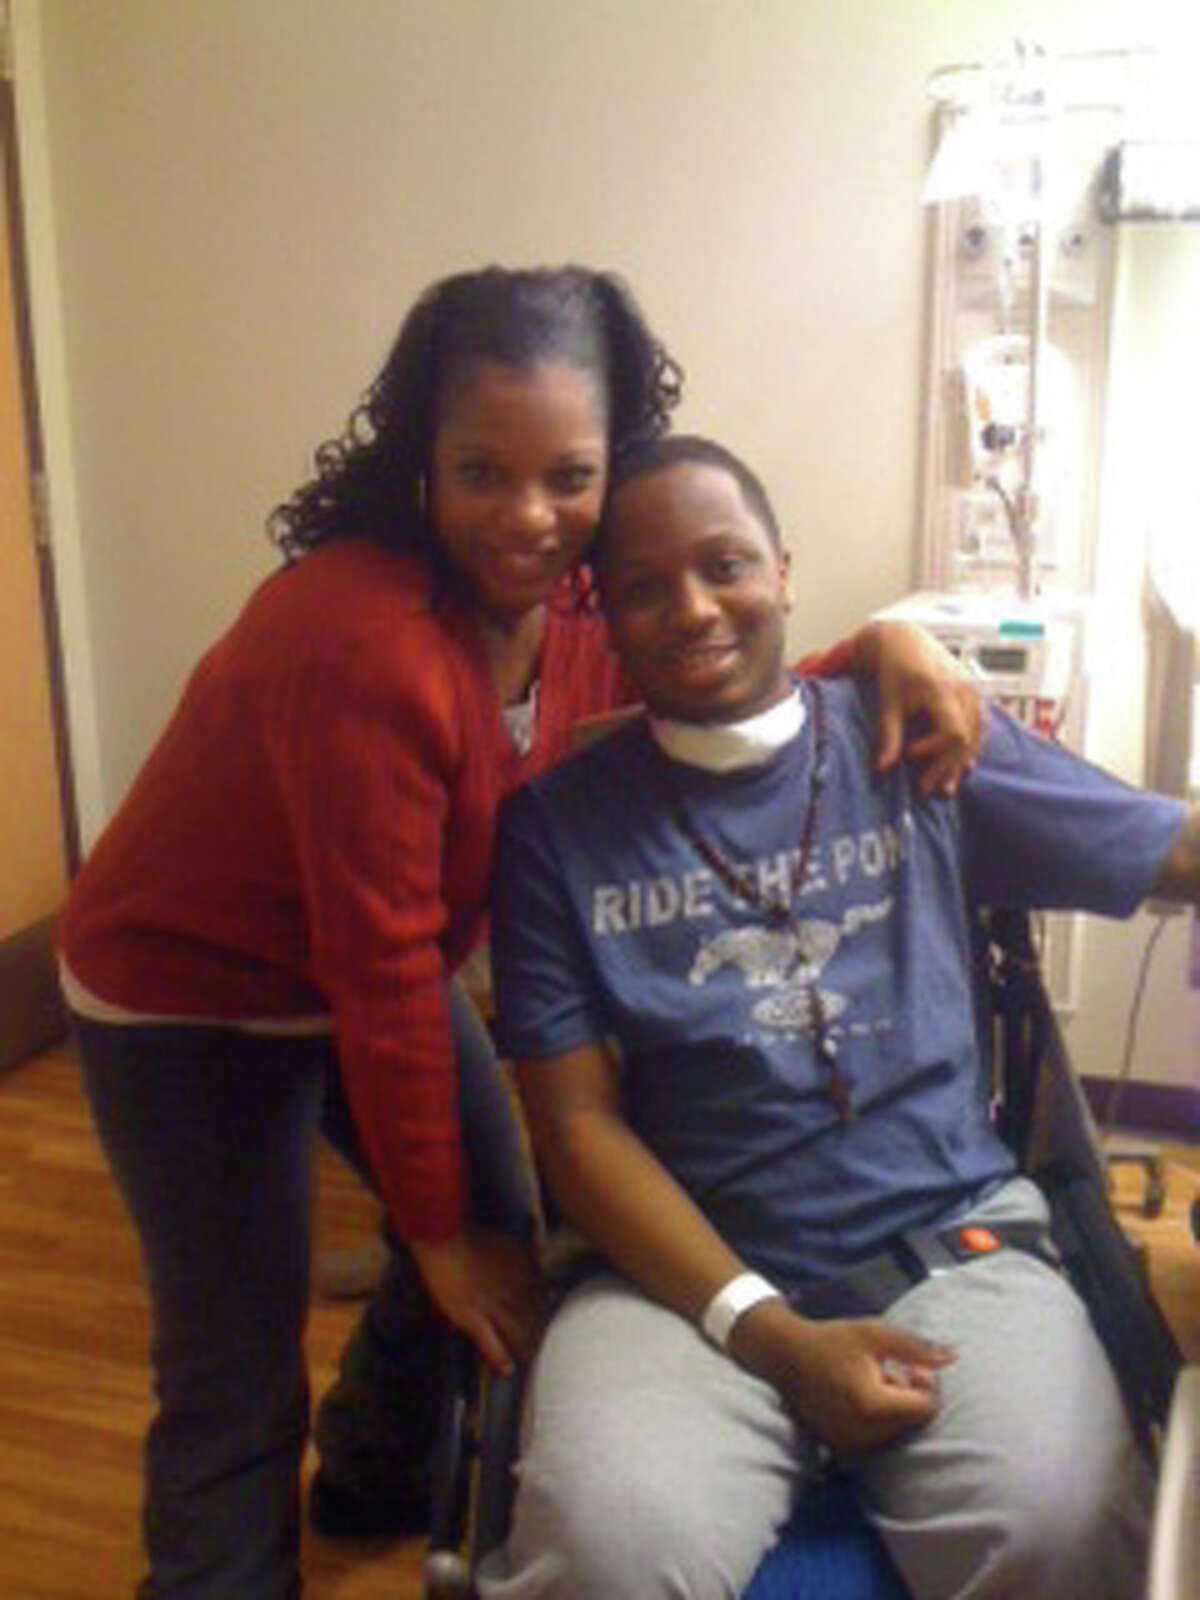 Davida Lara and her half-brother, Jamel Sawyer pose in a hospital room during Jamel's recovery. Sawyer was paralyzed after an infection by the superbug MRSA and family and friends are now trying to raise money to outfit Lara's home to accommodate a wheelchair.